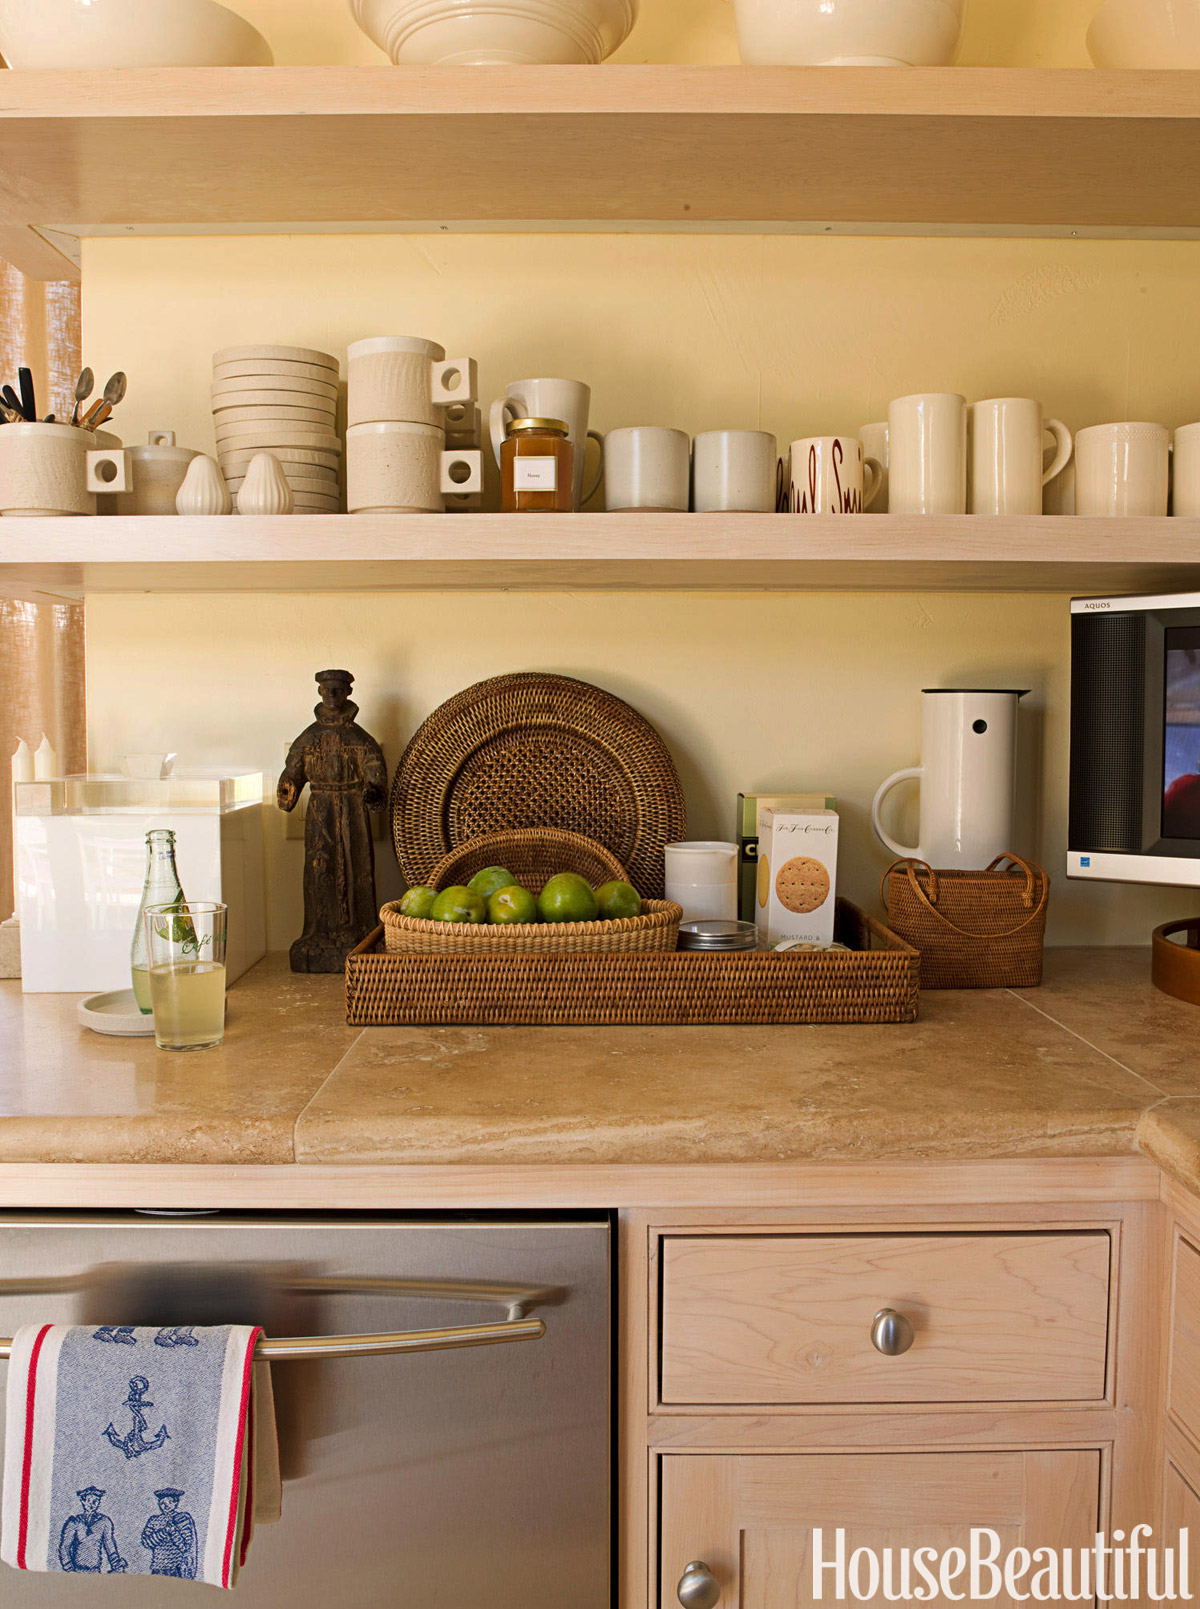 Small kitchen design ideas remodeling ideas for small kitchens - Small square kitchen design ideas ...